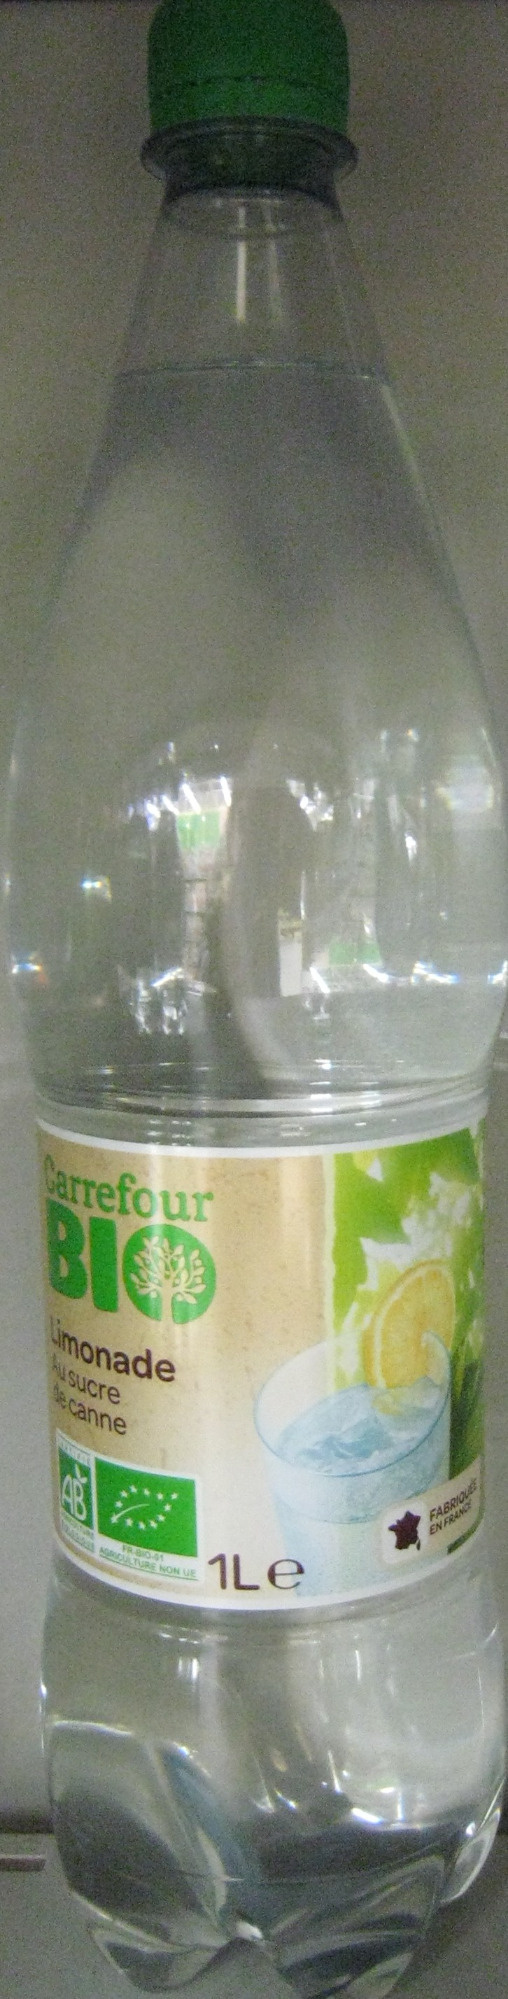 Carrefour BIO Limonade - Product - fr